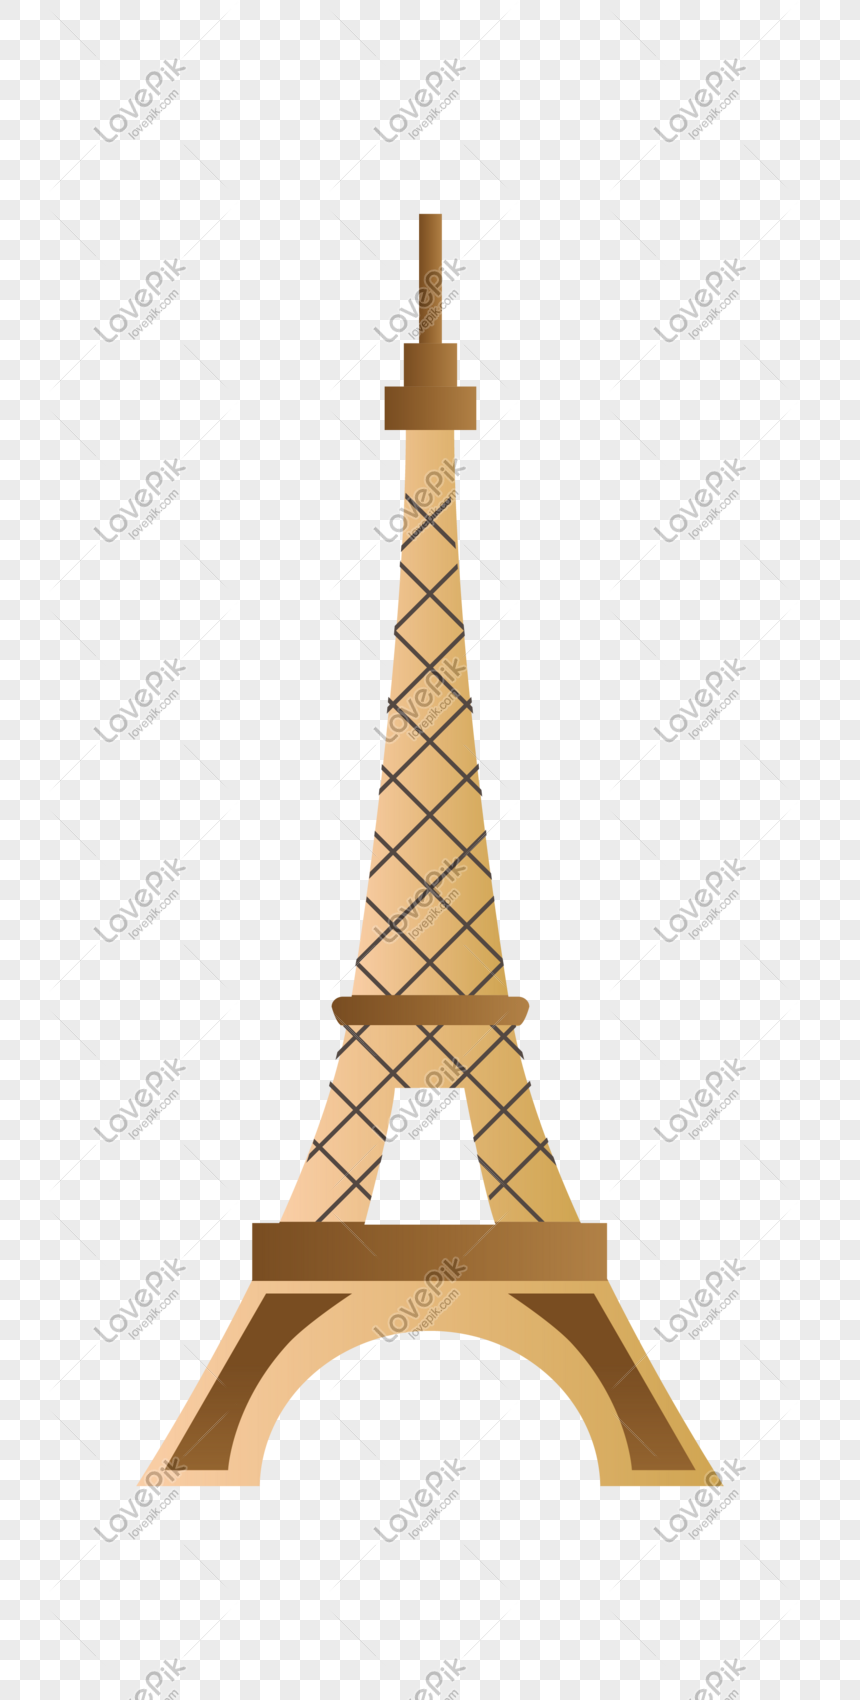 Hand Drawn Building Landmark Eiffel Tower Illustration Png